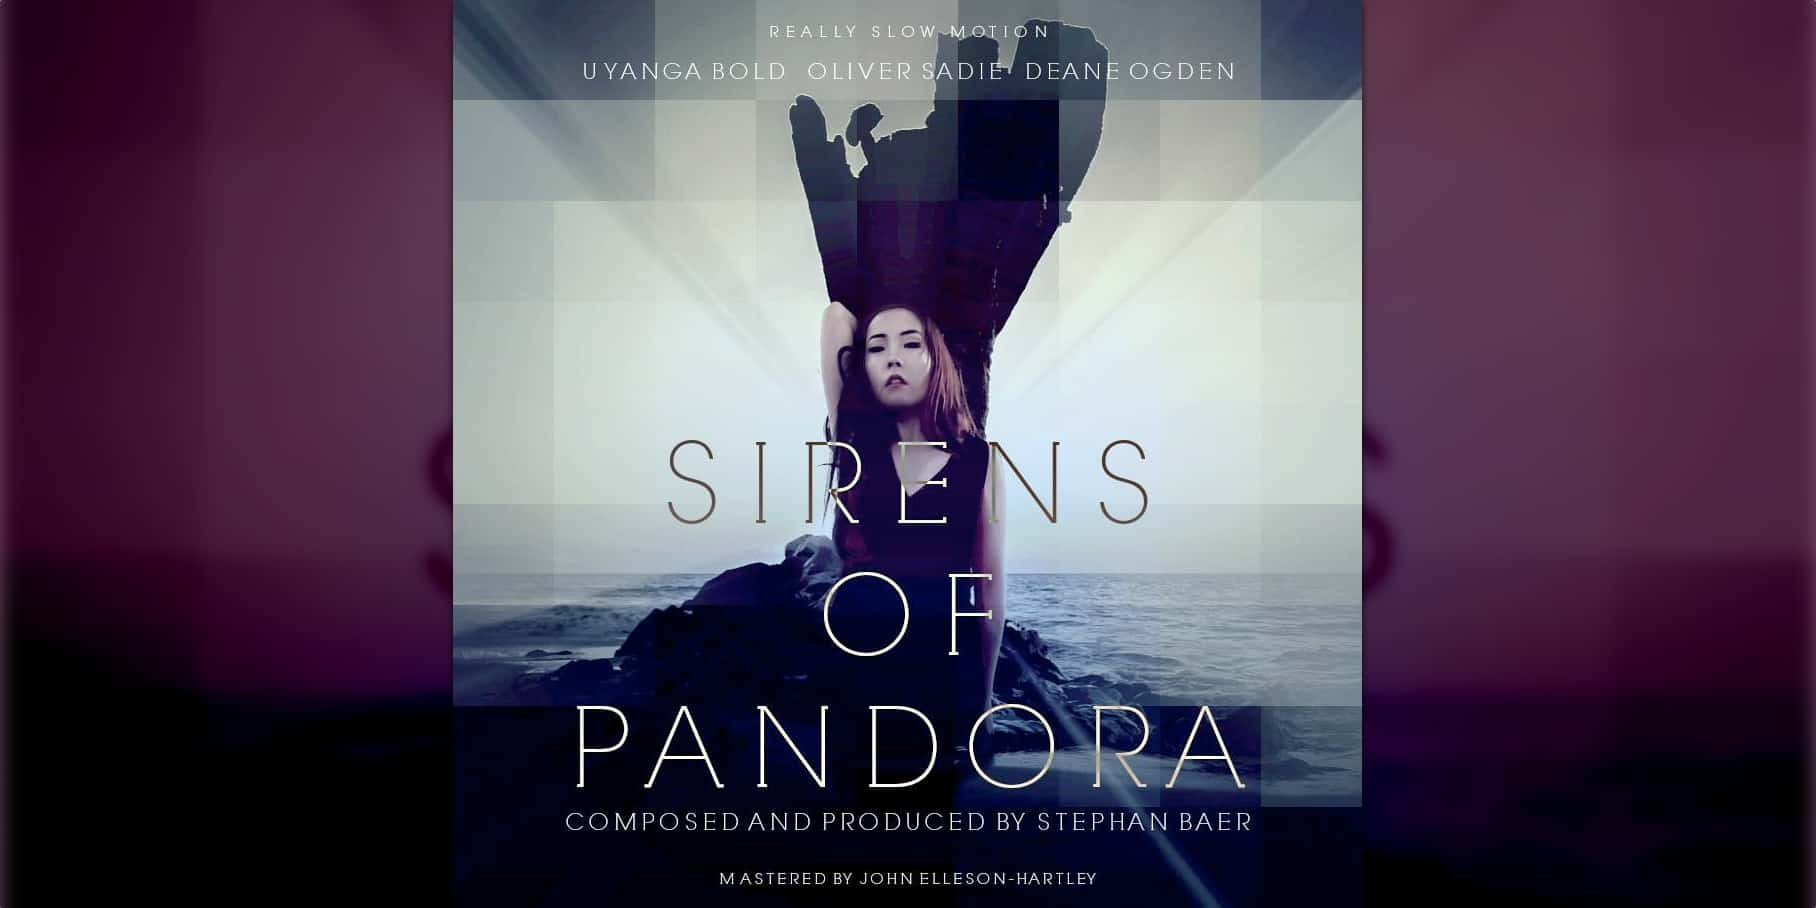 Sirens Of Pandora by Stephan Baer